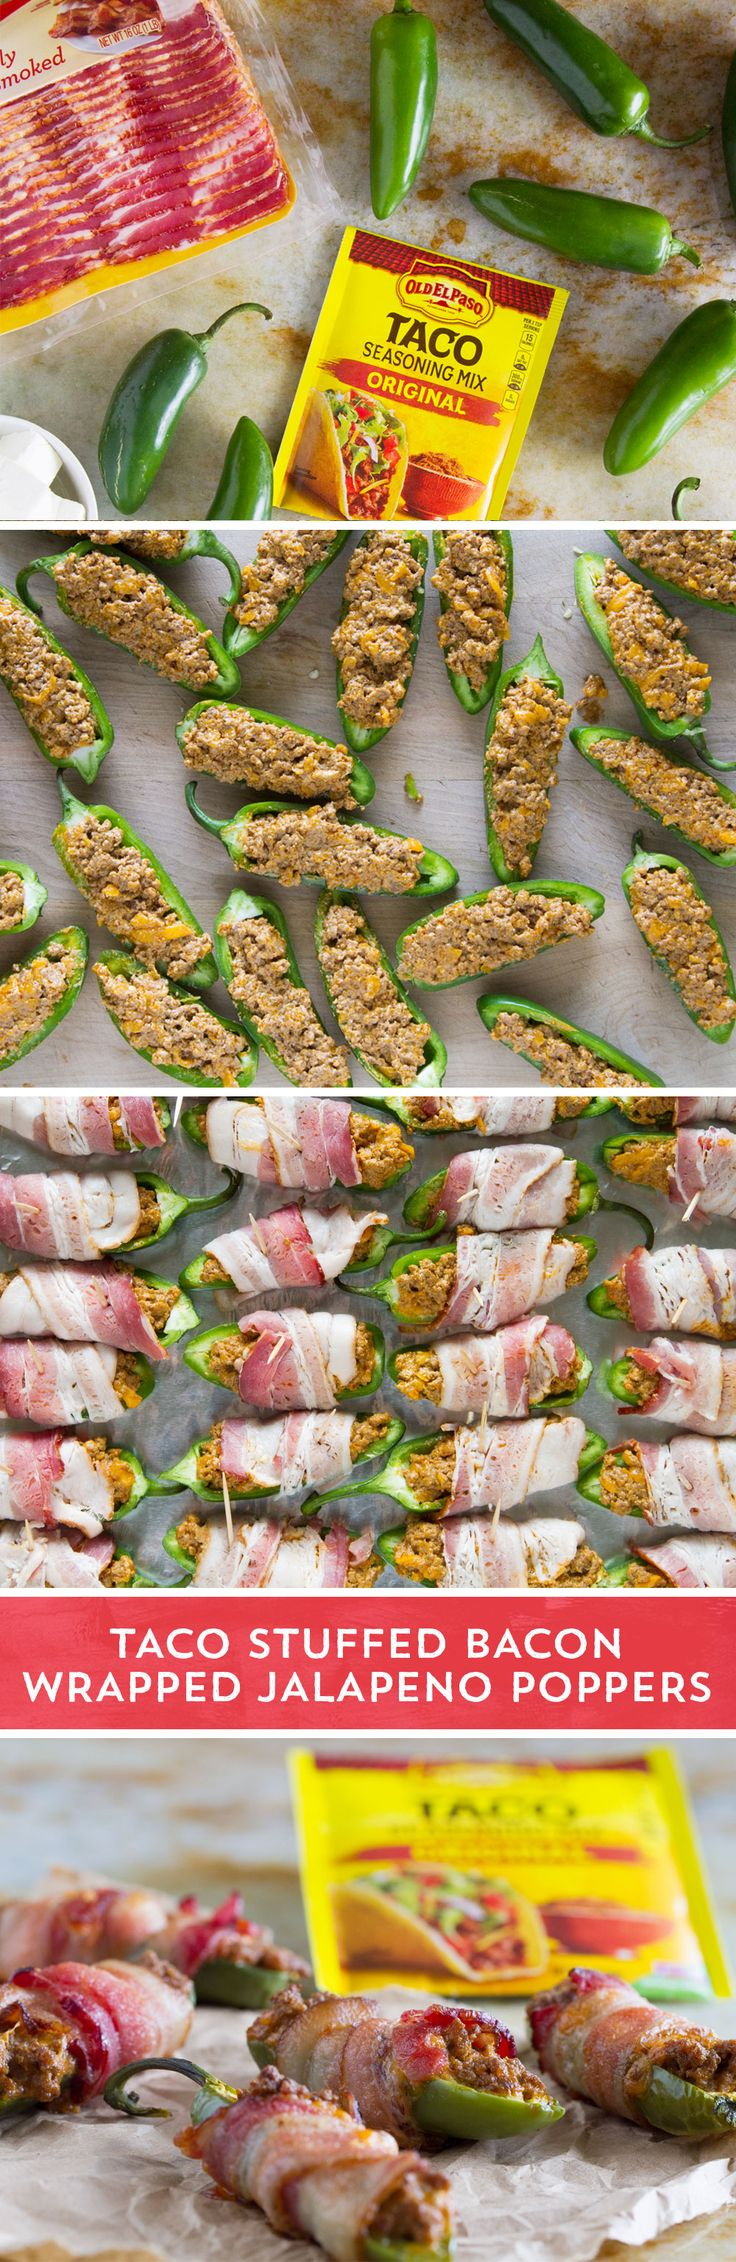 """Jalapeno poppers get """"Tex-Mex-ified"""" with these spicy mouthfuls from @tasteandtell. Fresh jalapenos get stuffed with cooked ground beef seasoned with Old El Paso™ Taco Seasoning mixed with softened cream cheese and shredded Cheddar cheese. If that isn't enough, the stuffed jalapenos then get wrapped in bacon before heading into the oven for 30 minutes. Bacon, melted cheese, taco flavors, a little kick . . . you may have just found a new game day favorite!"""